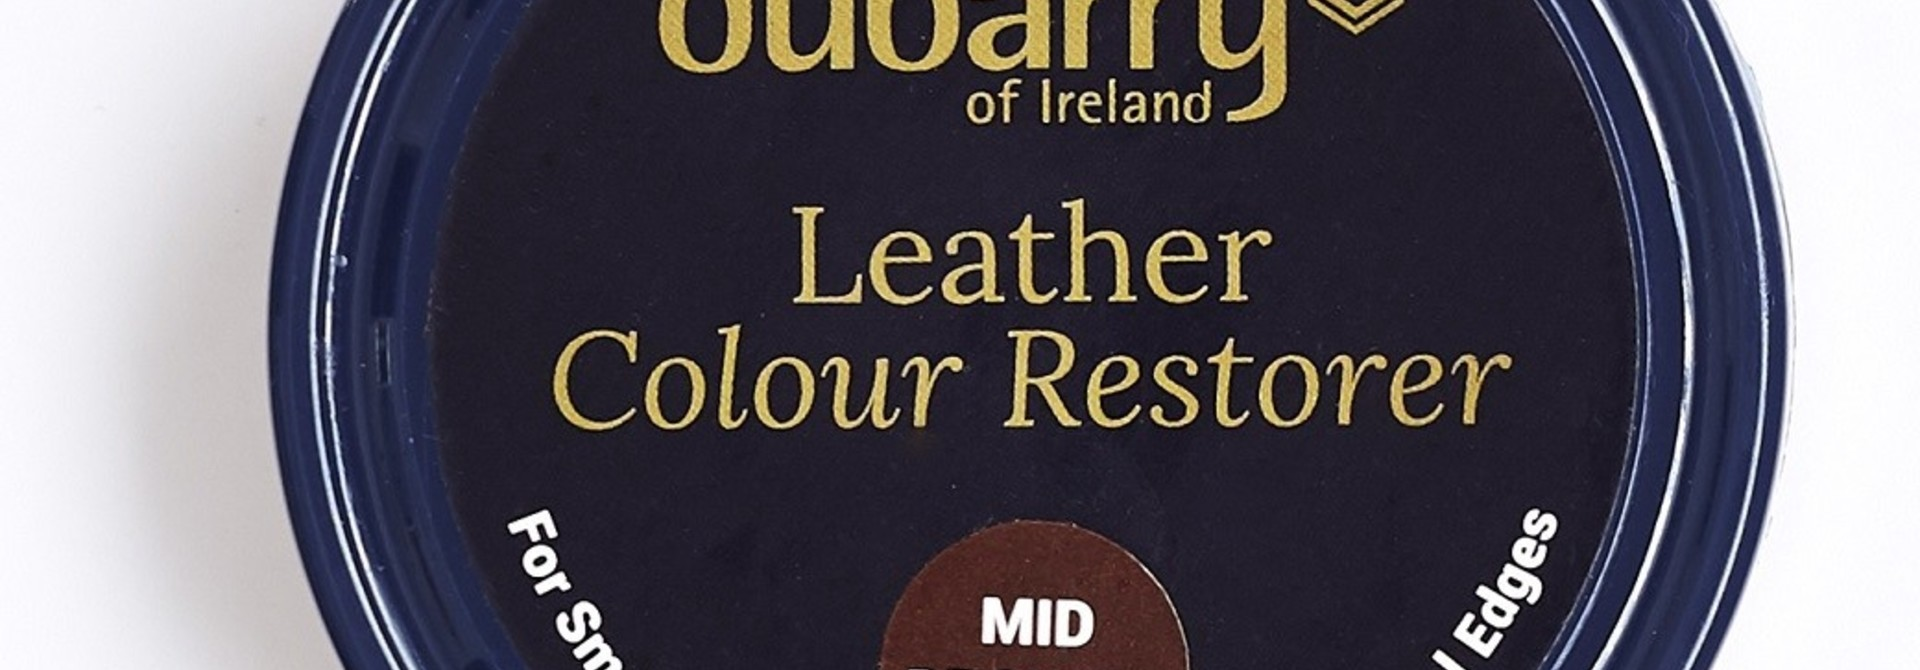 Dubarry Leather Colour Restorer Mid Browns